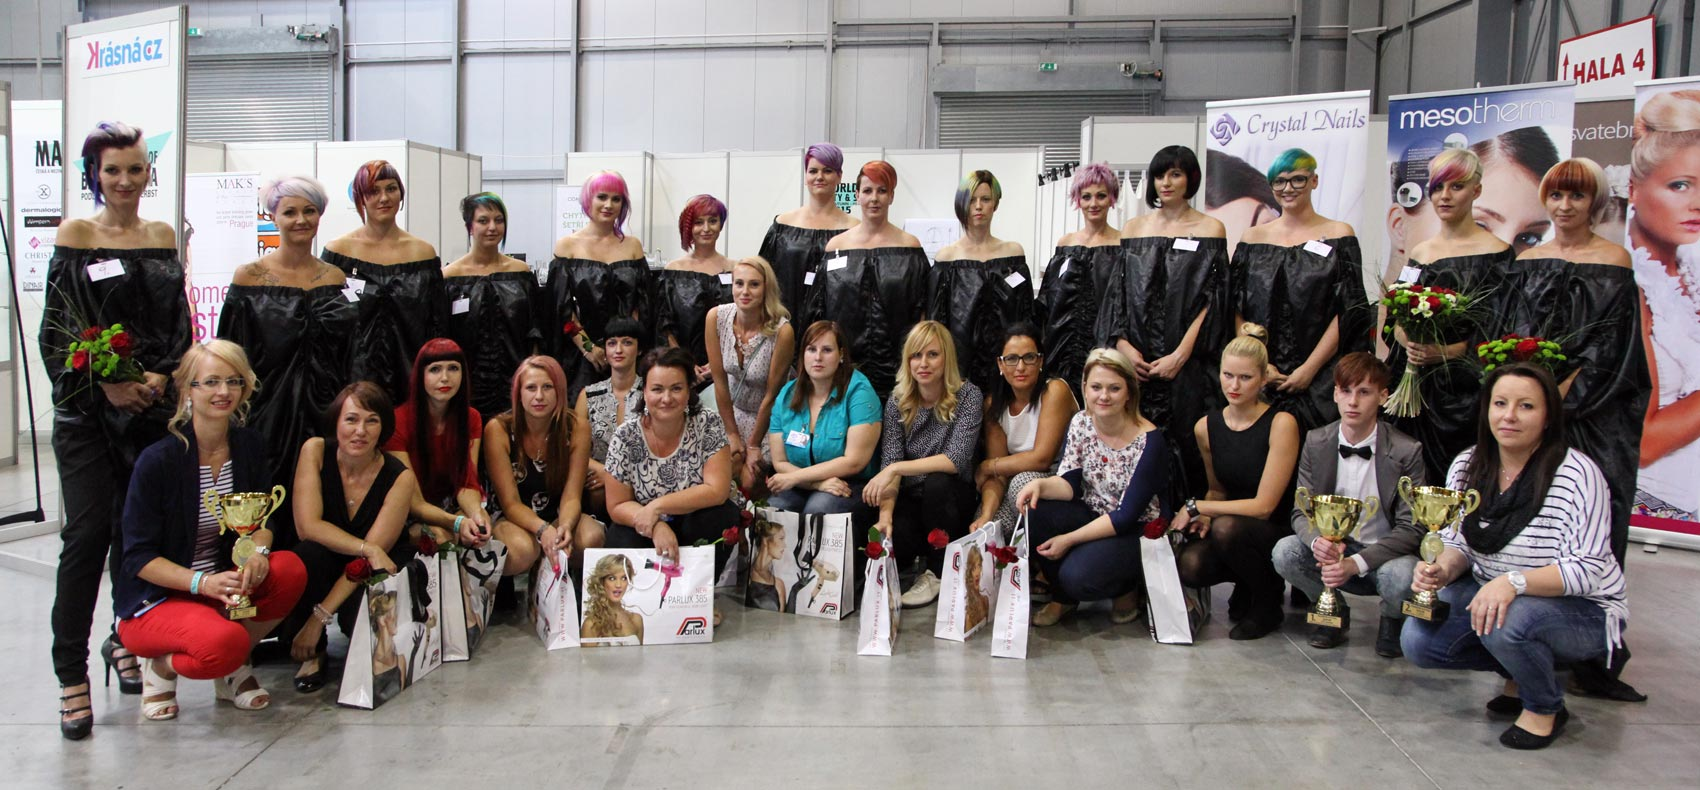 Participants of hairdressing competition World of Beauty & Spa – Inspiration 2016 with their models and hairstyles.